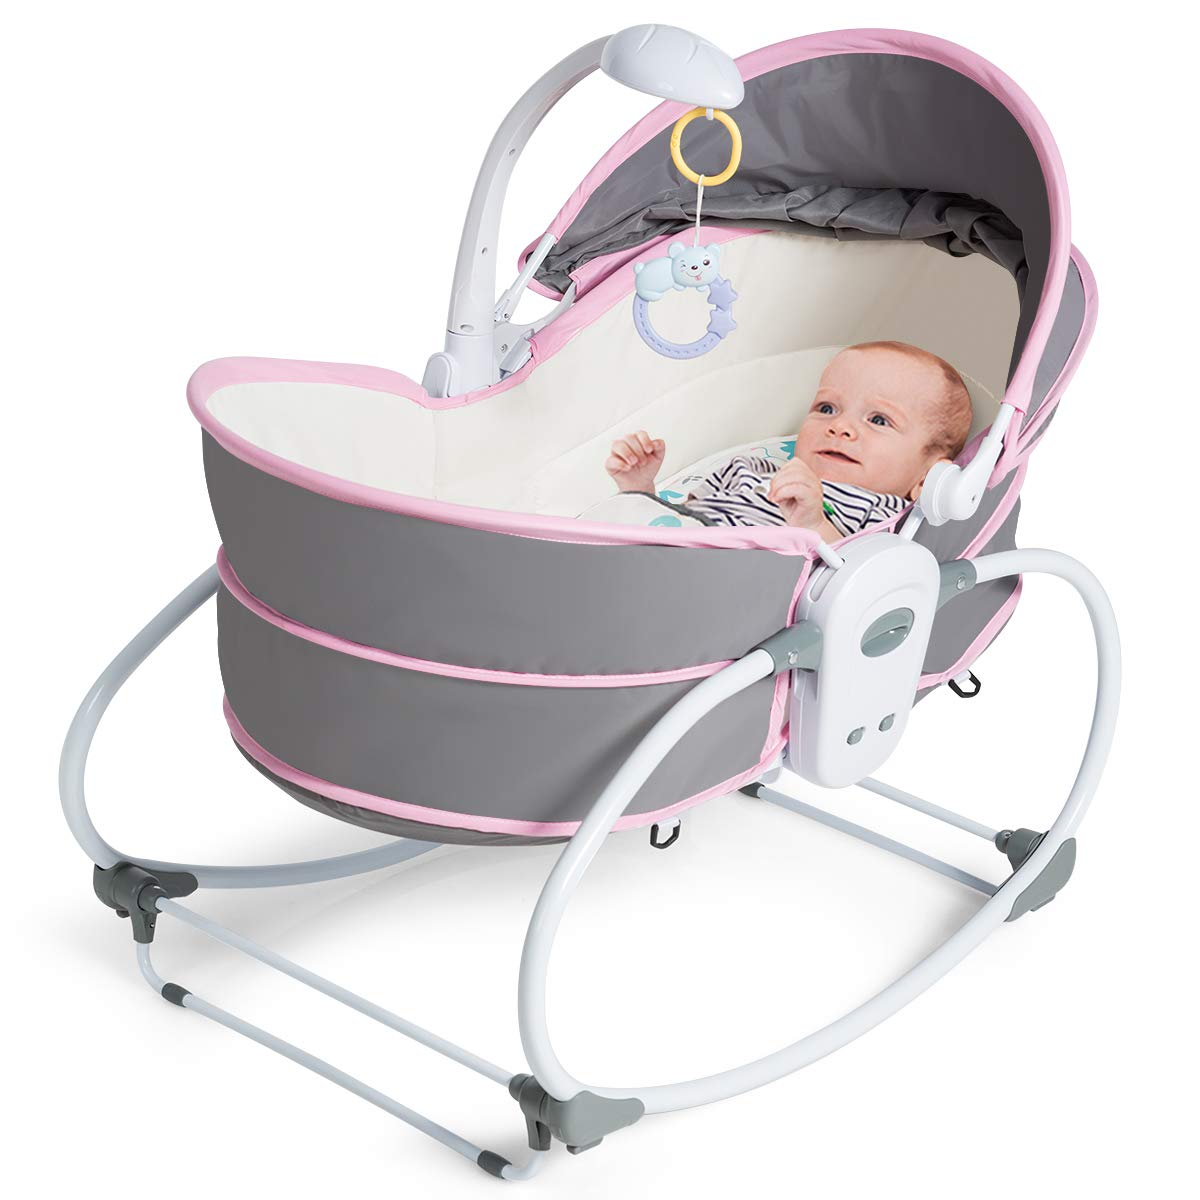 Costzon 5 in 1 Baby Cradle Swing, Portable Newborn Gliding Bassinet with Detachable Canopy Music Toys Vibration, Rocking Infant Crib Sleeping Chair for Travel (Pink and Gray)